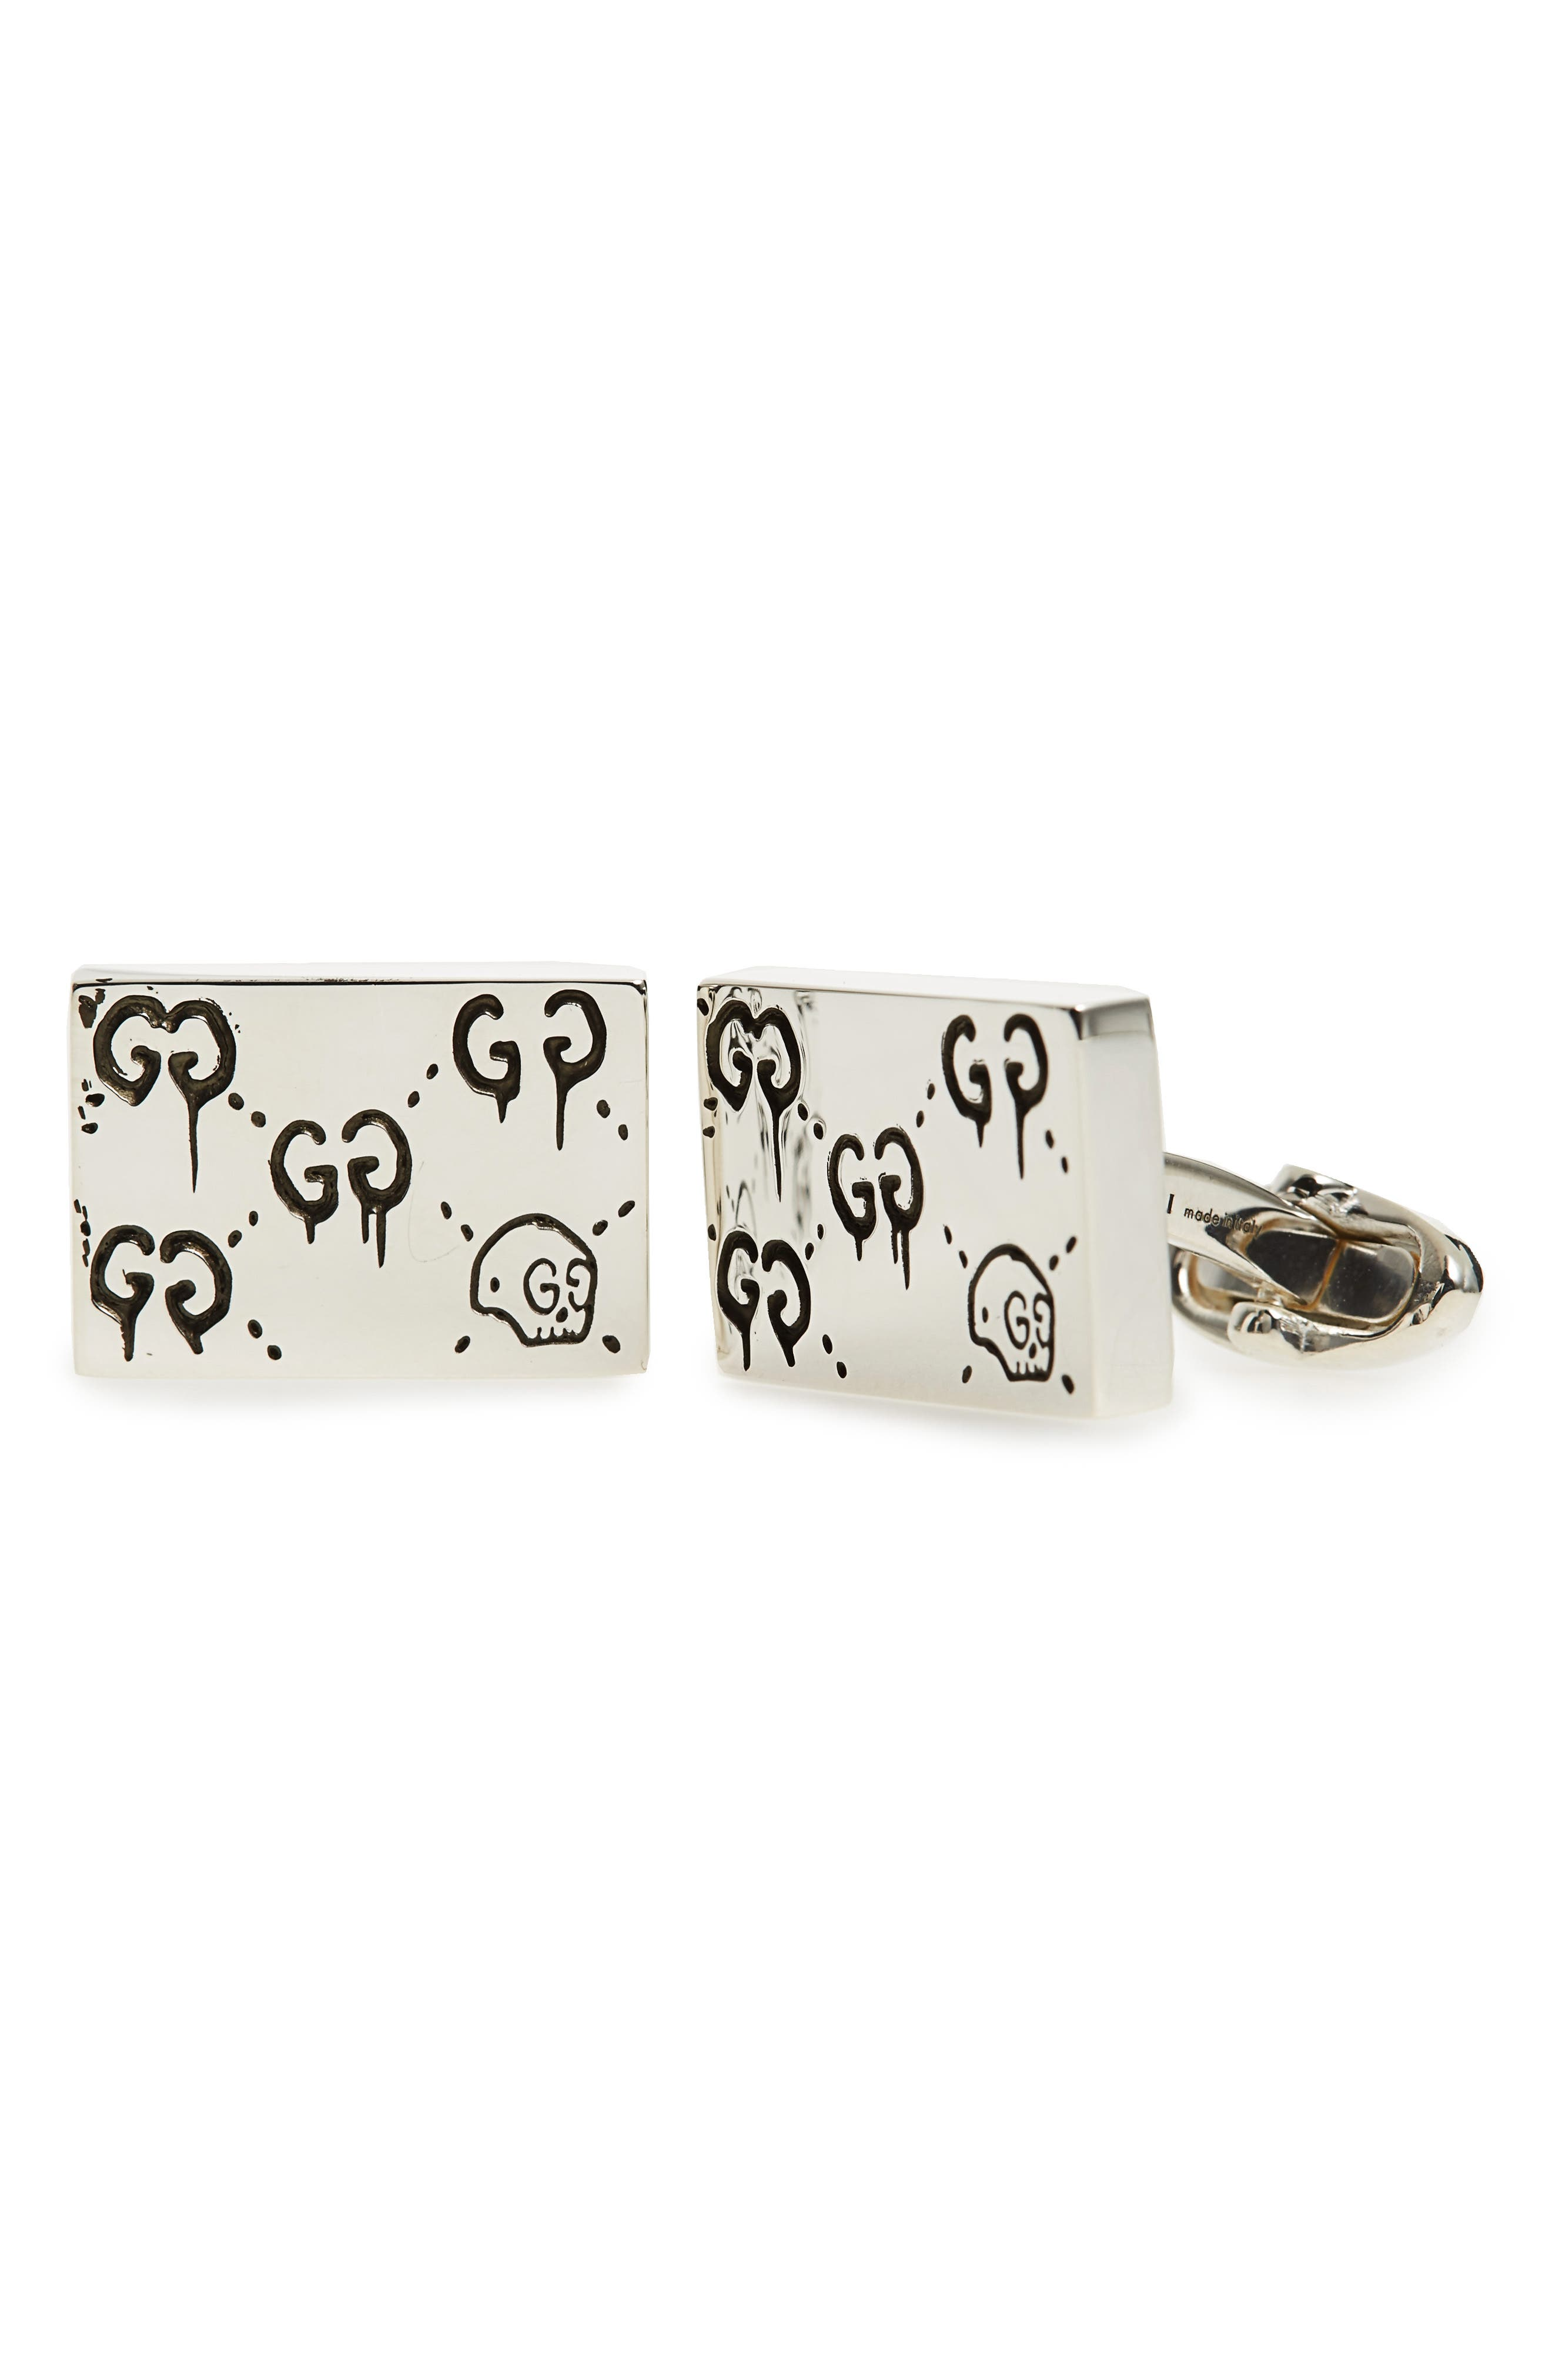 Ghost Motif Cuff Links,                             Main thumbnail 1, color,                             040